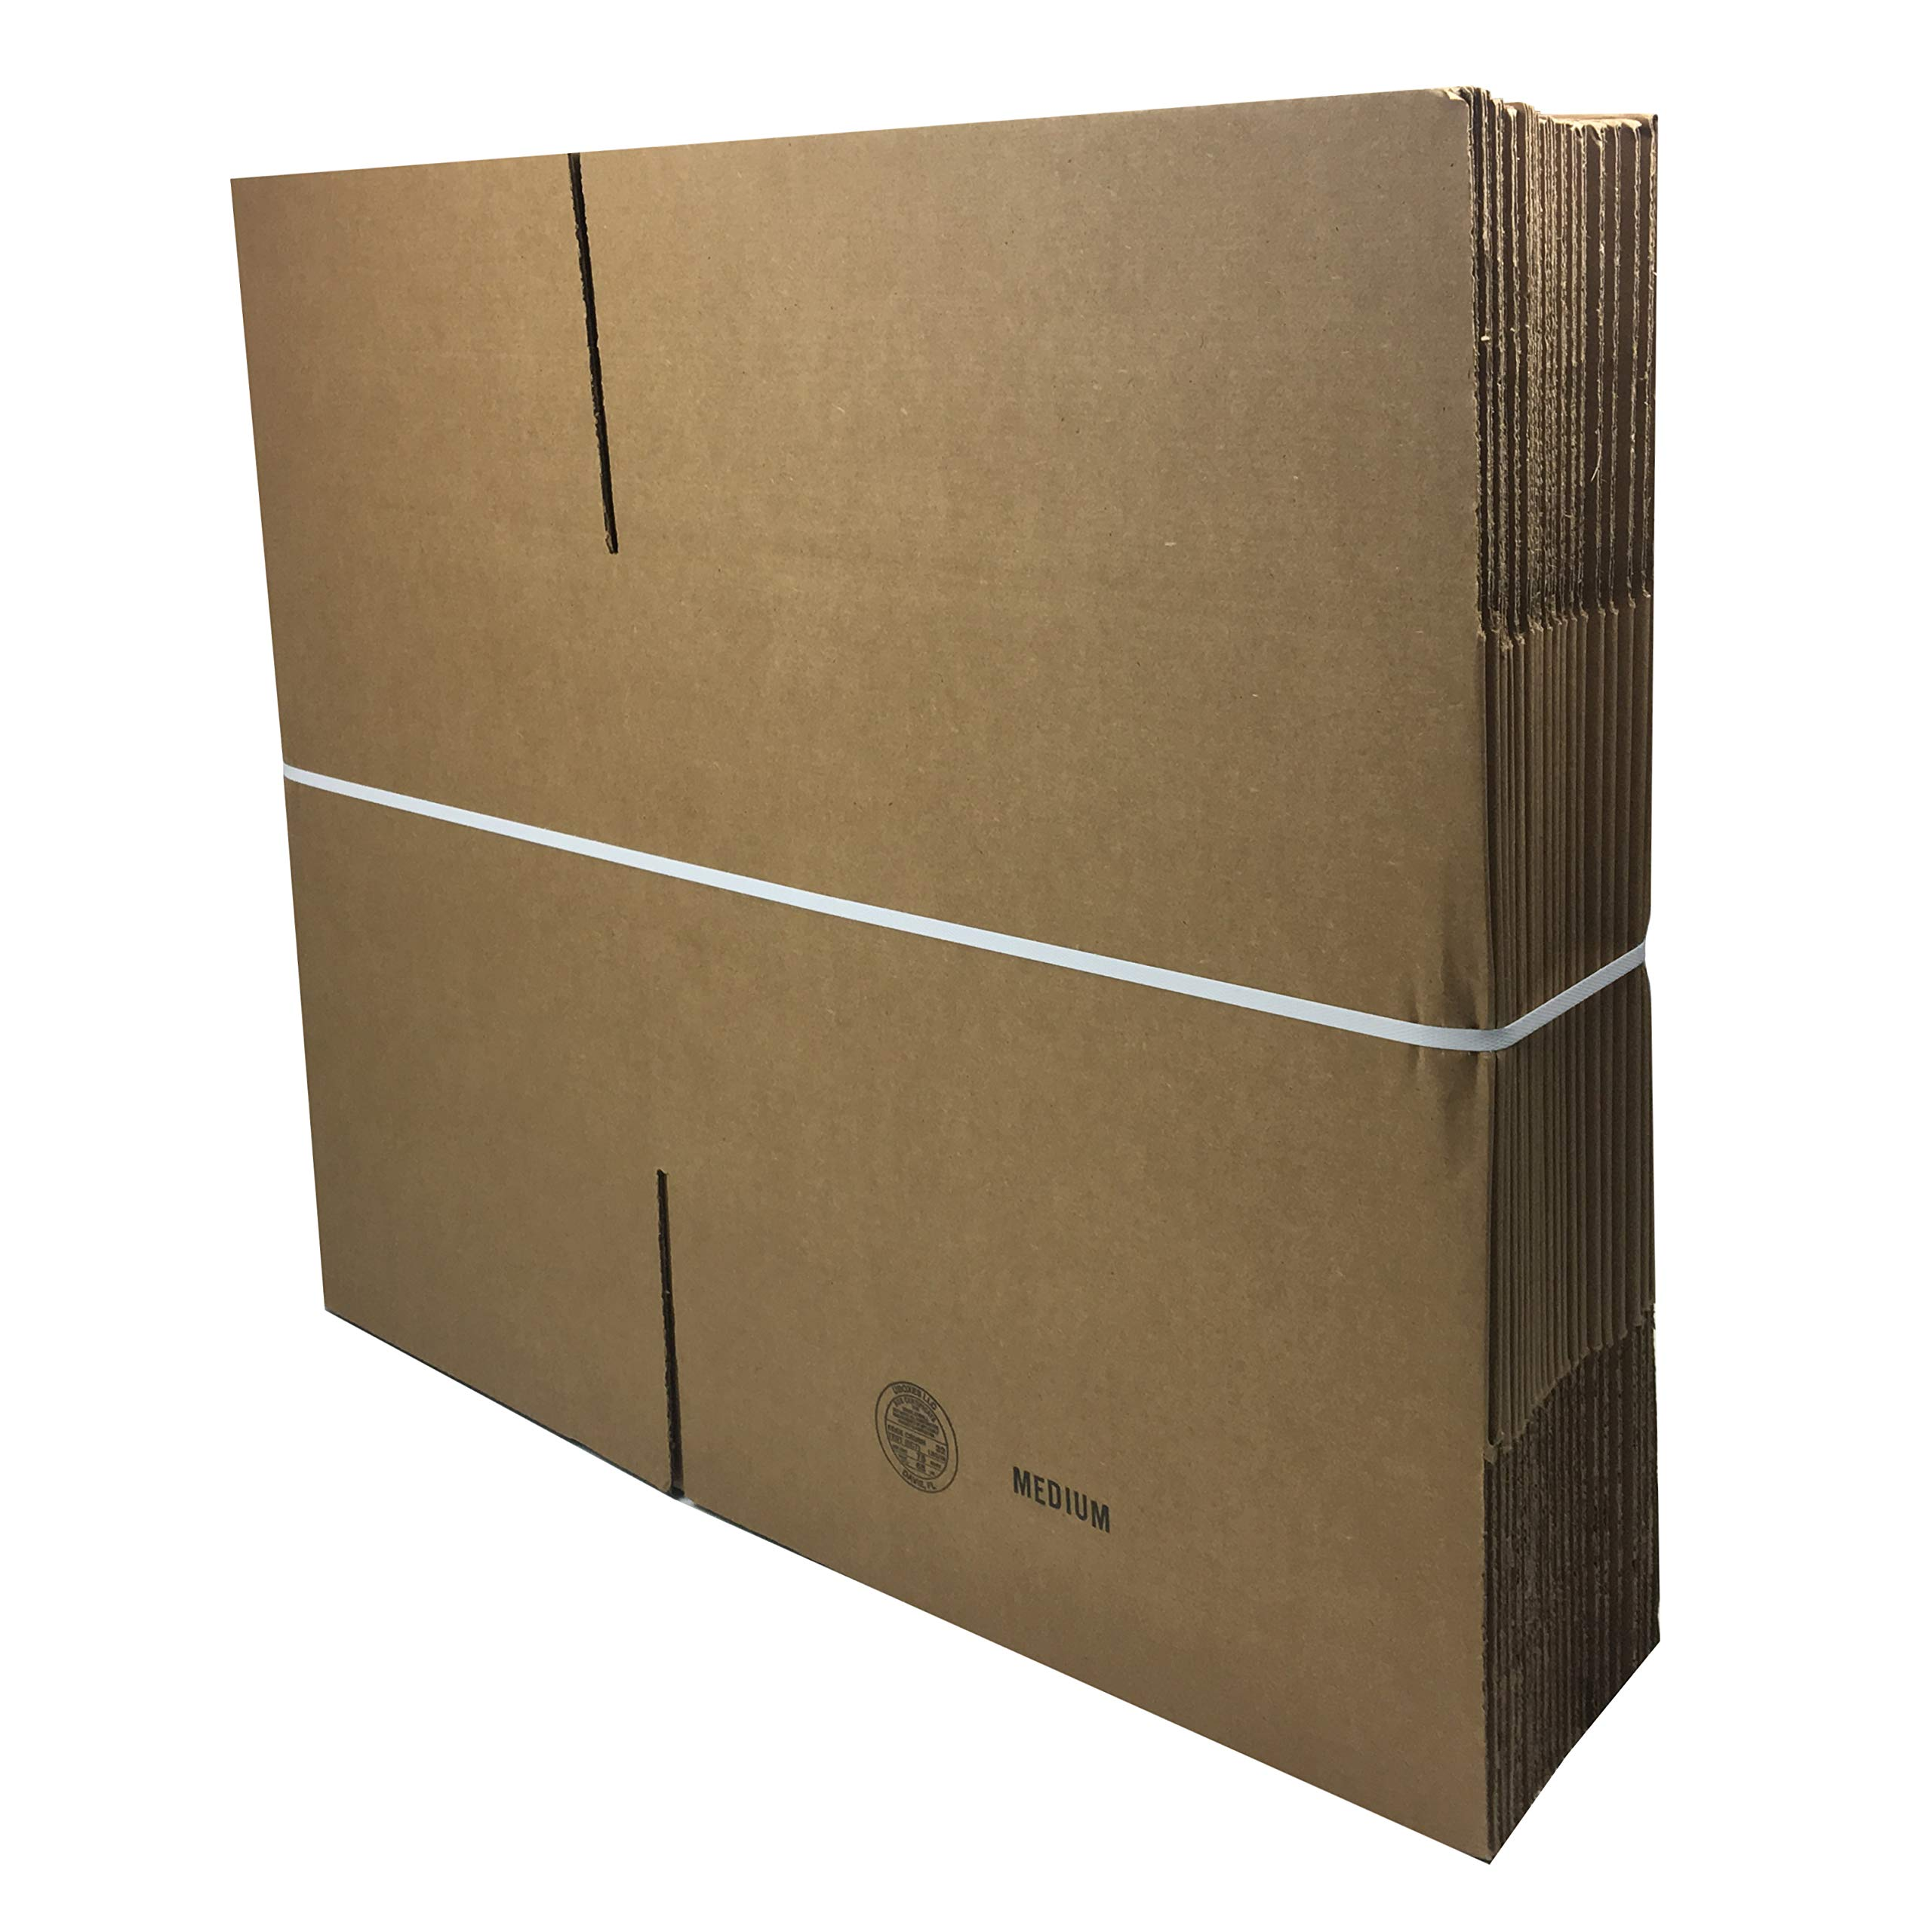 uBoxes Medium Moving Boxes, 18 x 14 x 12 inch, 10 Pack, Cardboard Box (BOXMINIMED10) by Uboxes (Image #2)